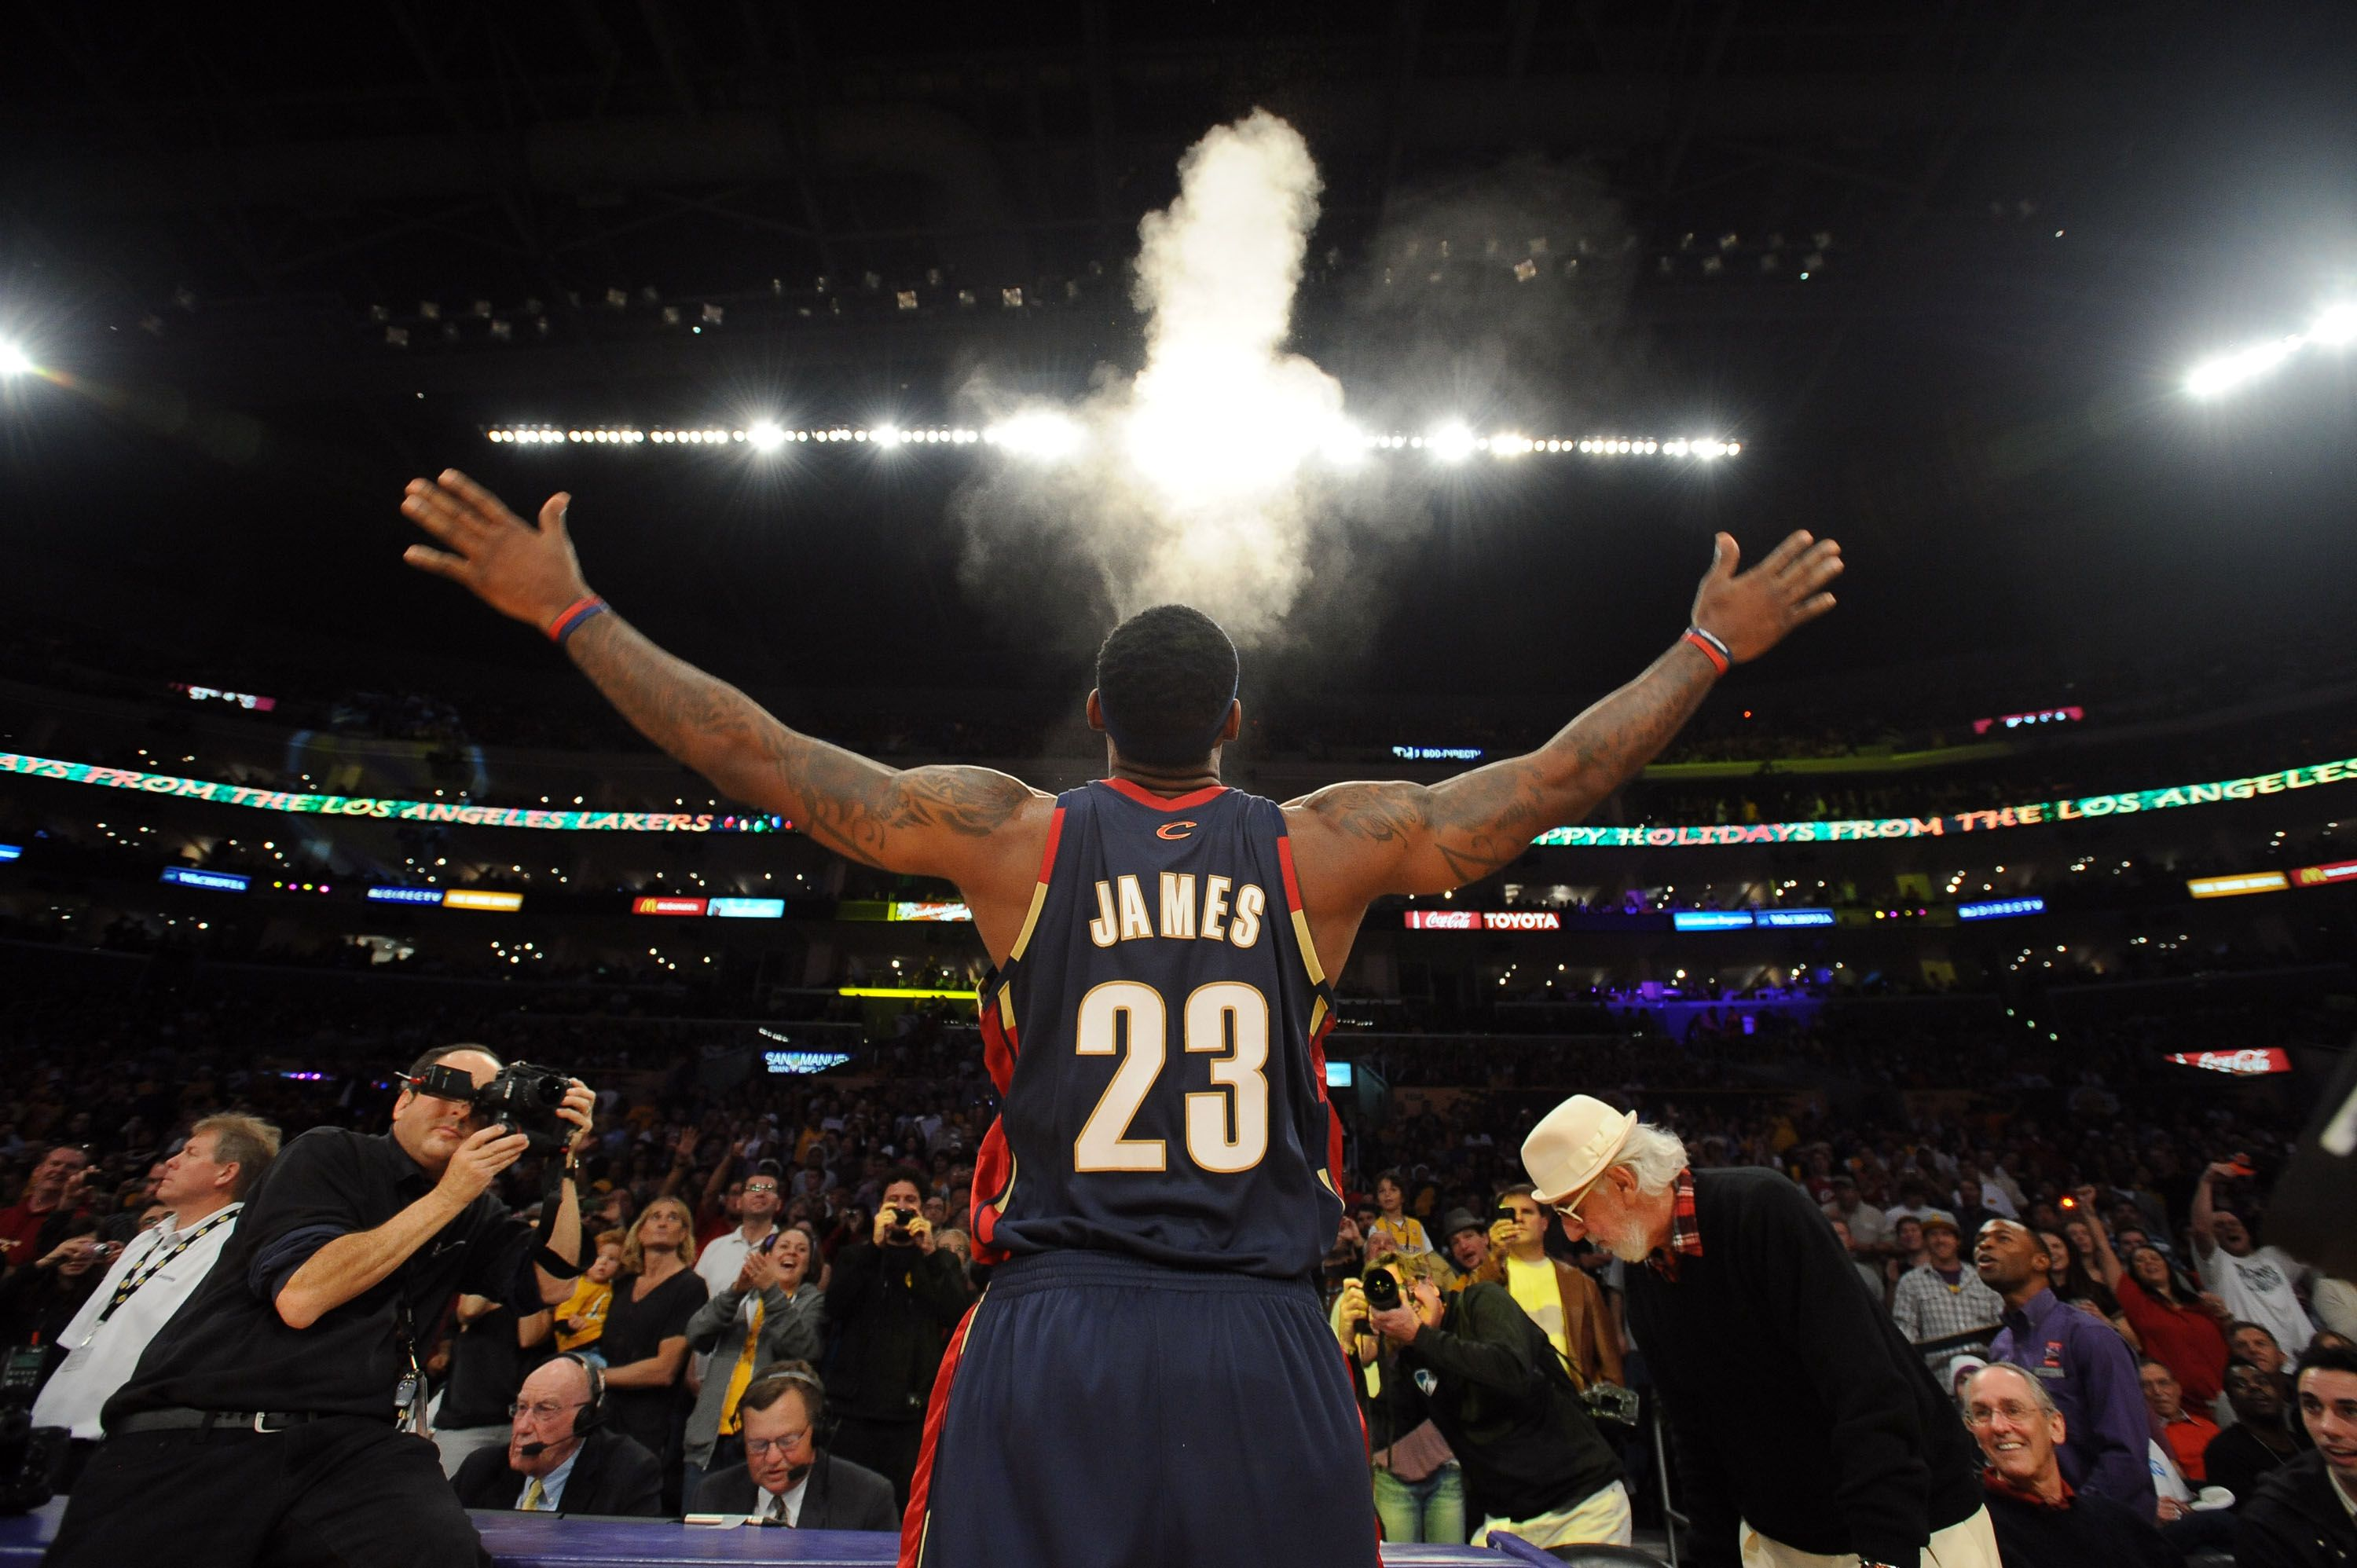 Lebron S Signature Pre Game Powder Toss Yes Yes Yes Lebron James Poster Lebron James Lebron